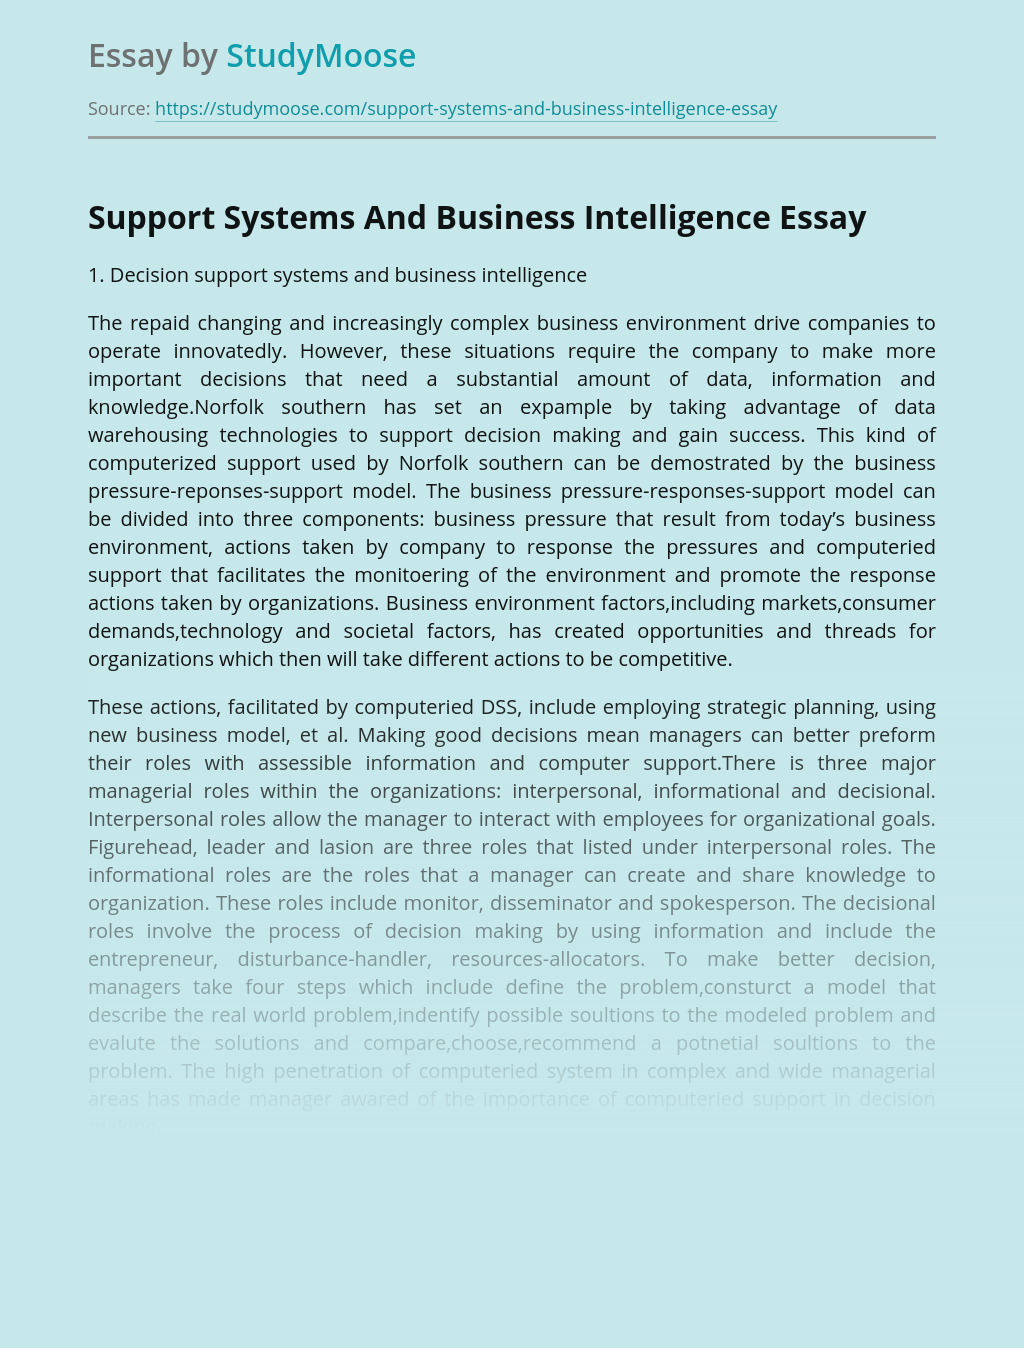 Support Systems And Business Intelligence